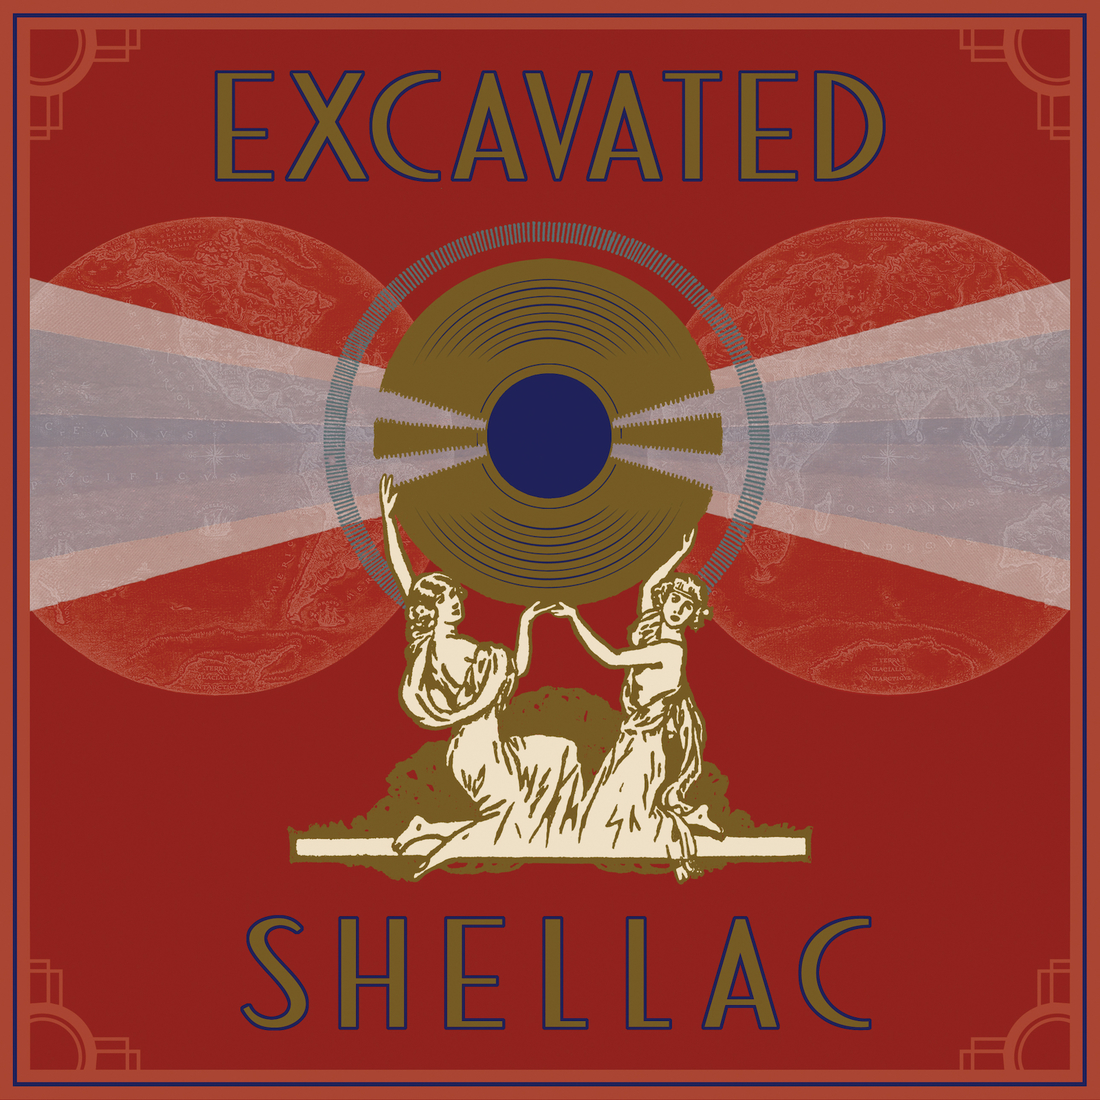 Excavated Shellac cover